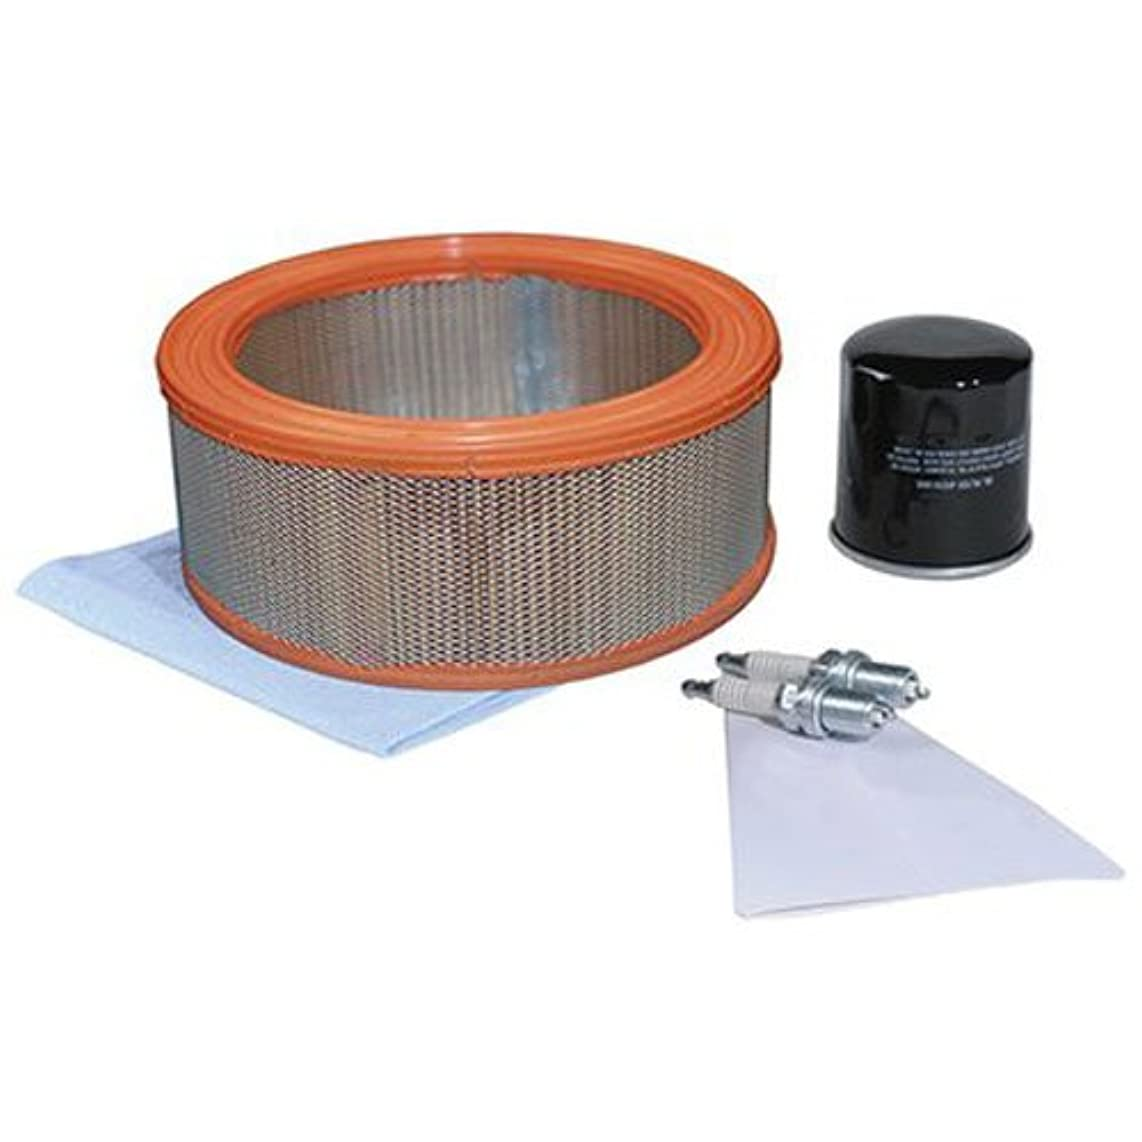 Generac 5665 Air Cooled Home Standby Generator Maintenance Kit, 20kW, 999cc Kit (For HSB models prior to 2013)